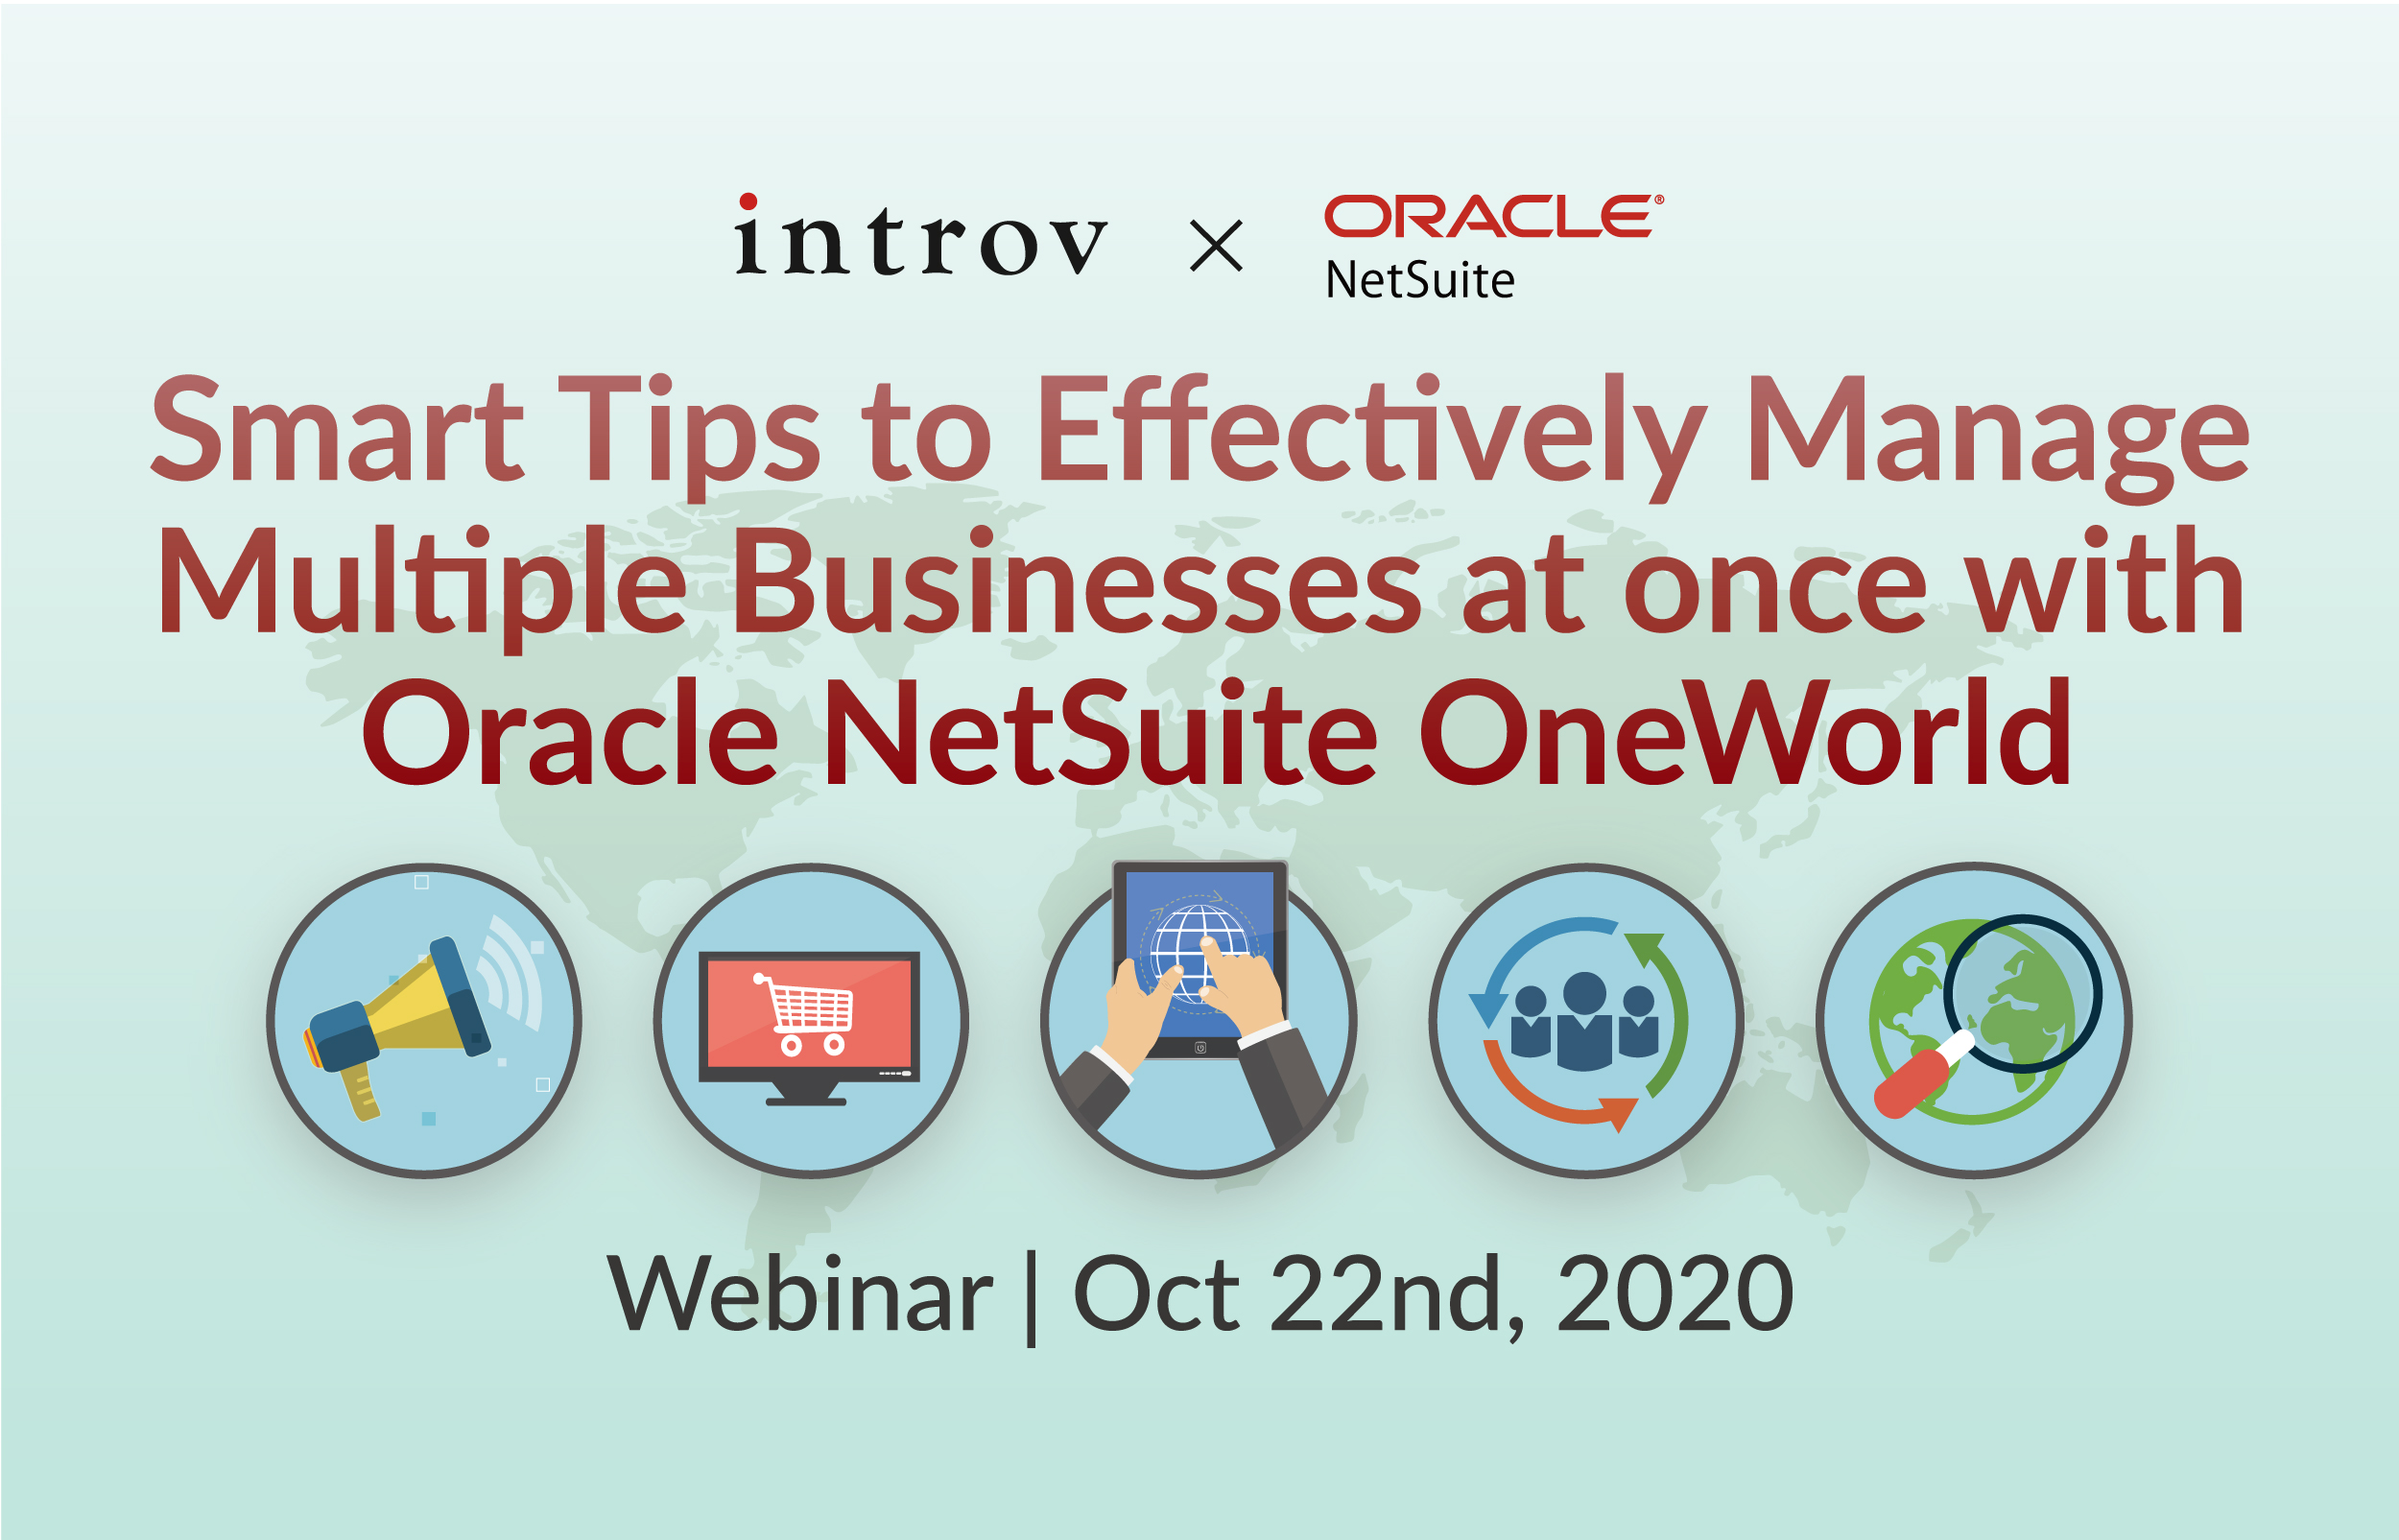 Webinar: Smart tips to effectively manage multiple businesses at once with Oracle NetSuite OneWorld (October 22nd, 2020)